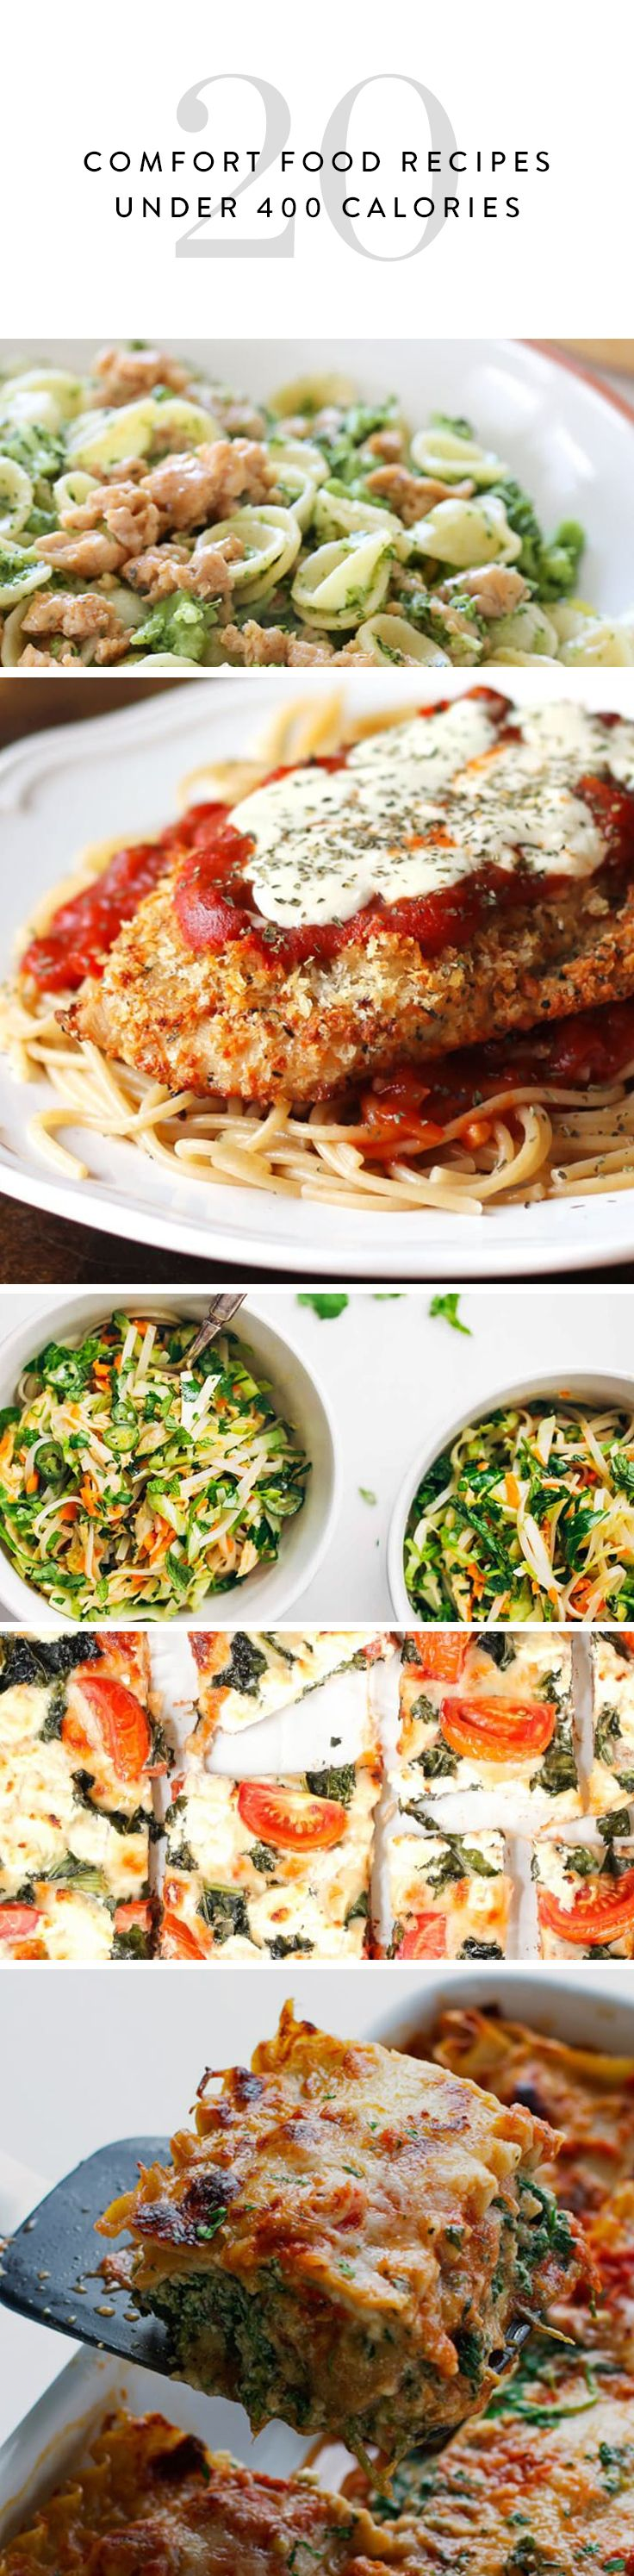 20 Comfort Food Recipes Under 400 Calories